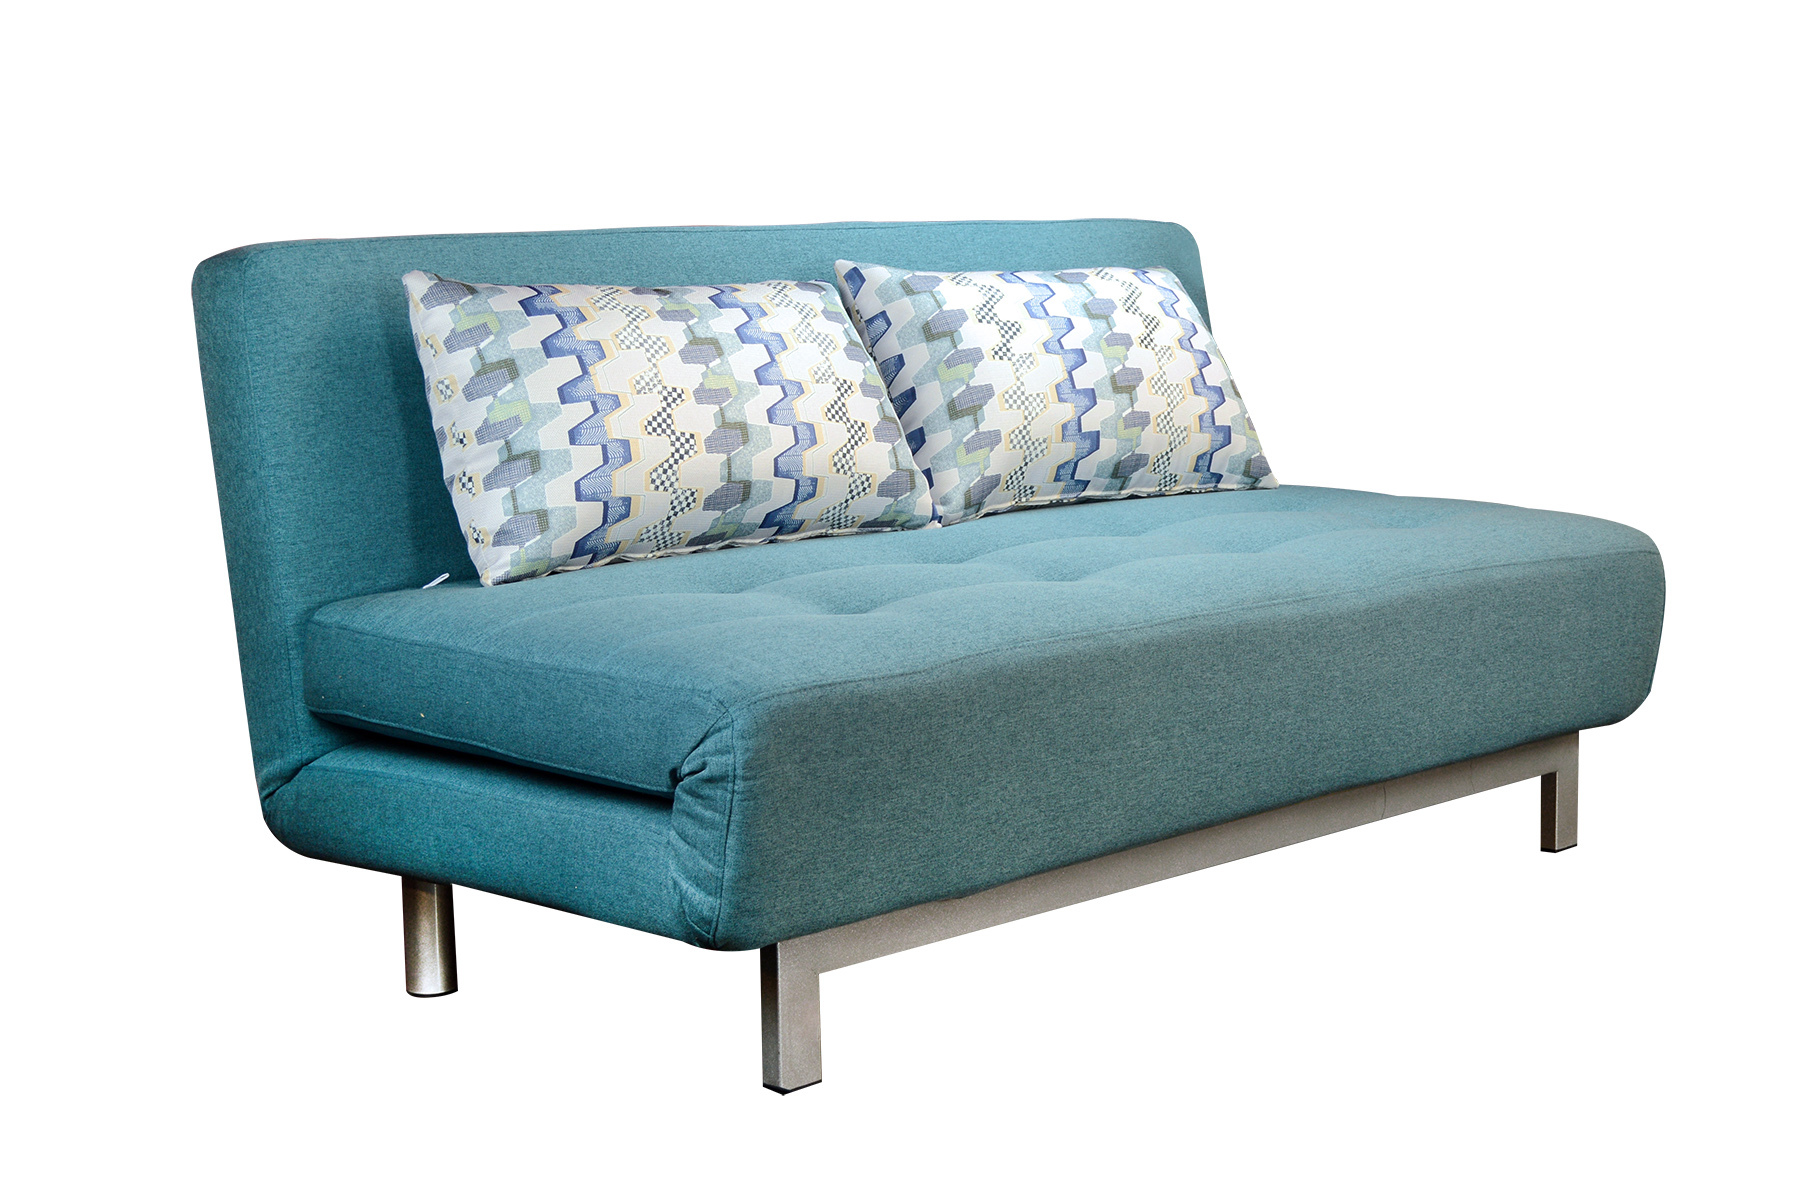 sofa bed IR 3025.jpg